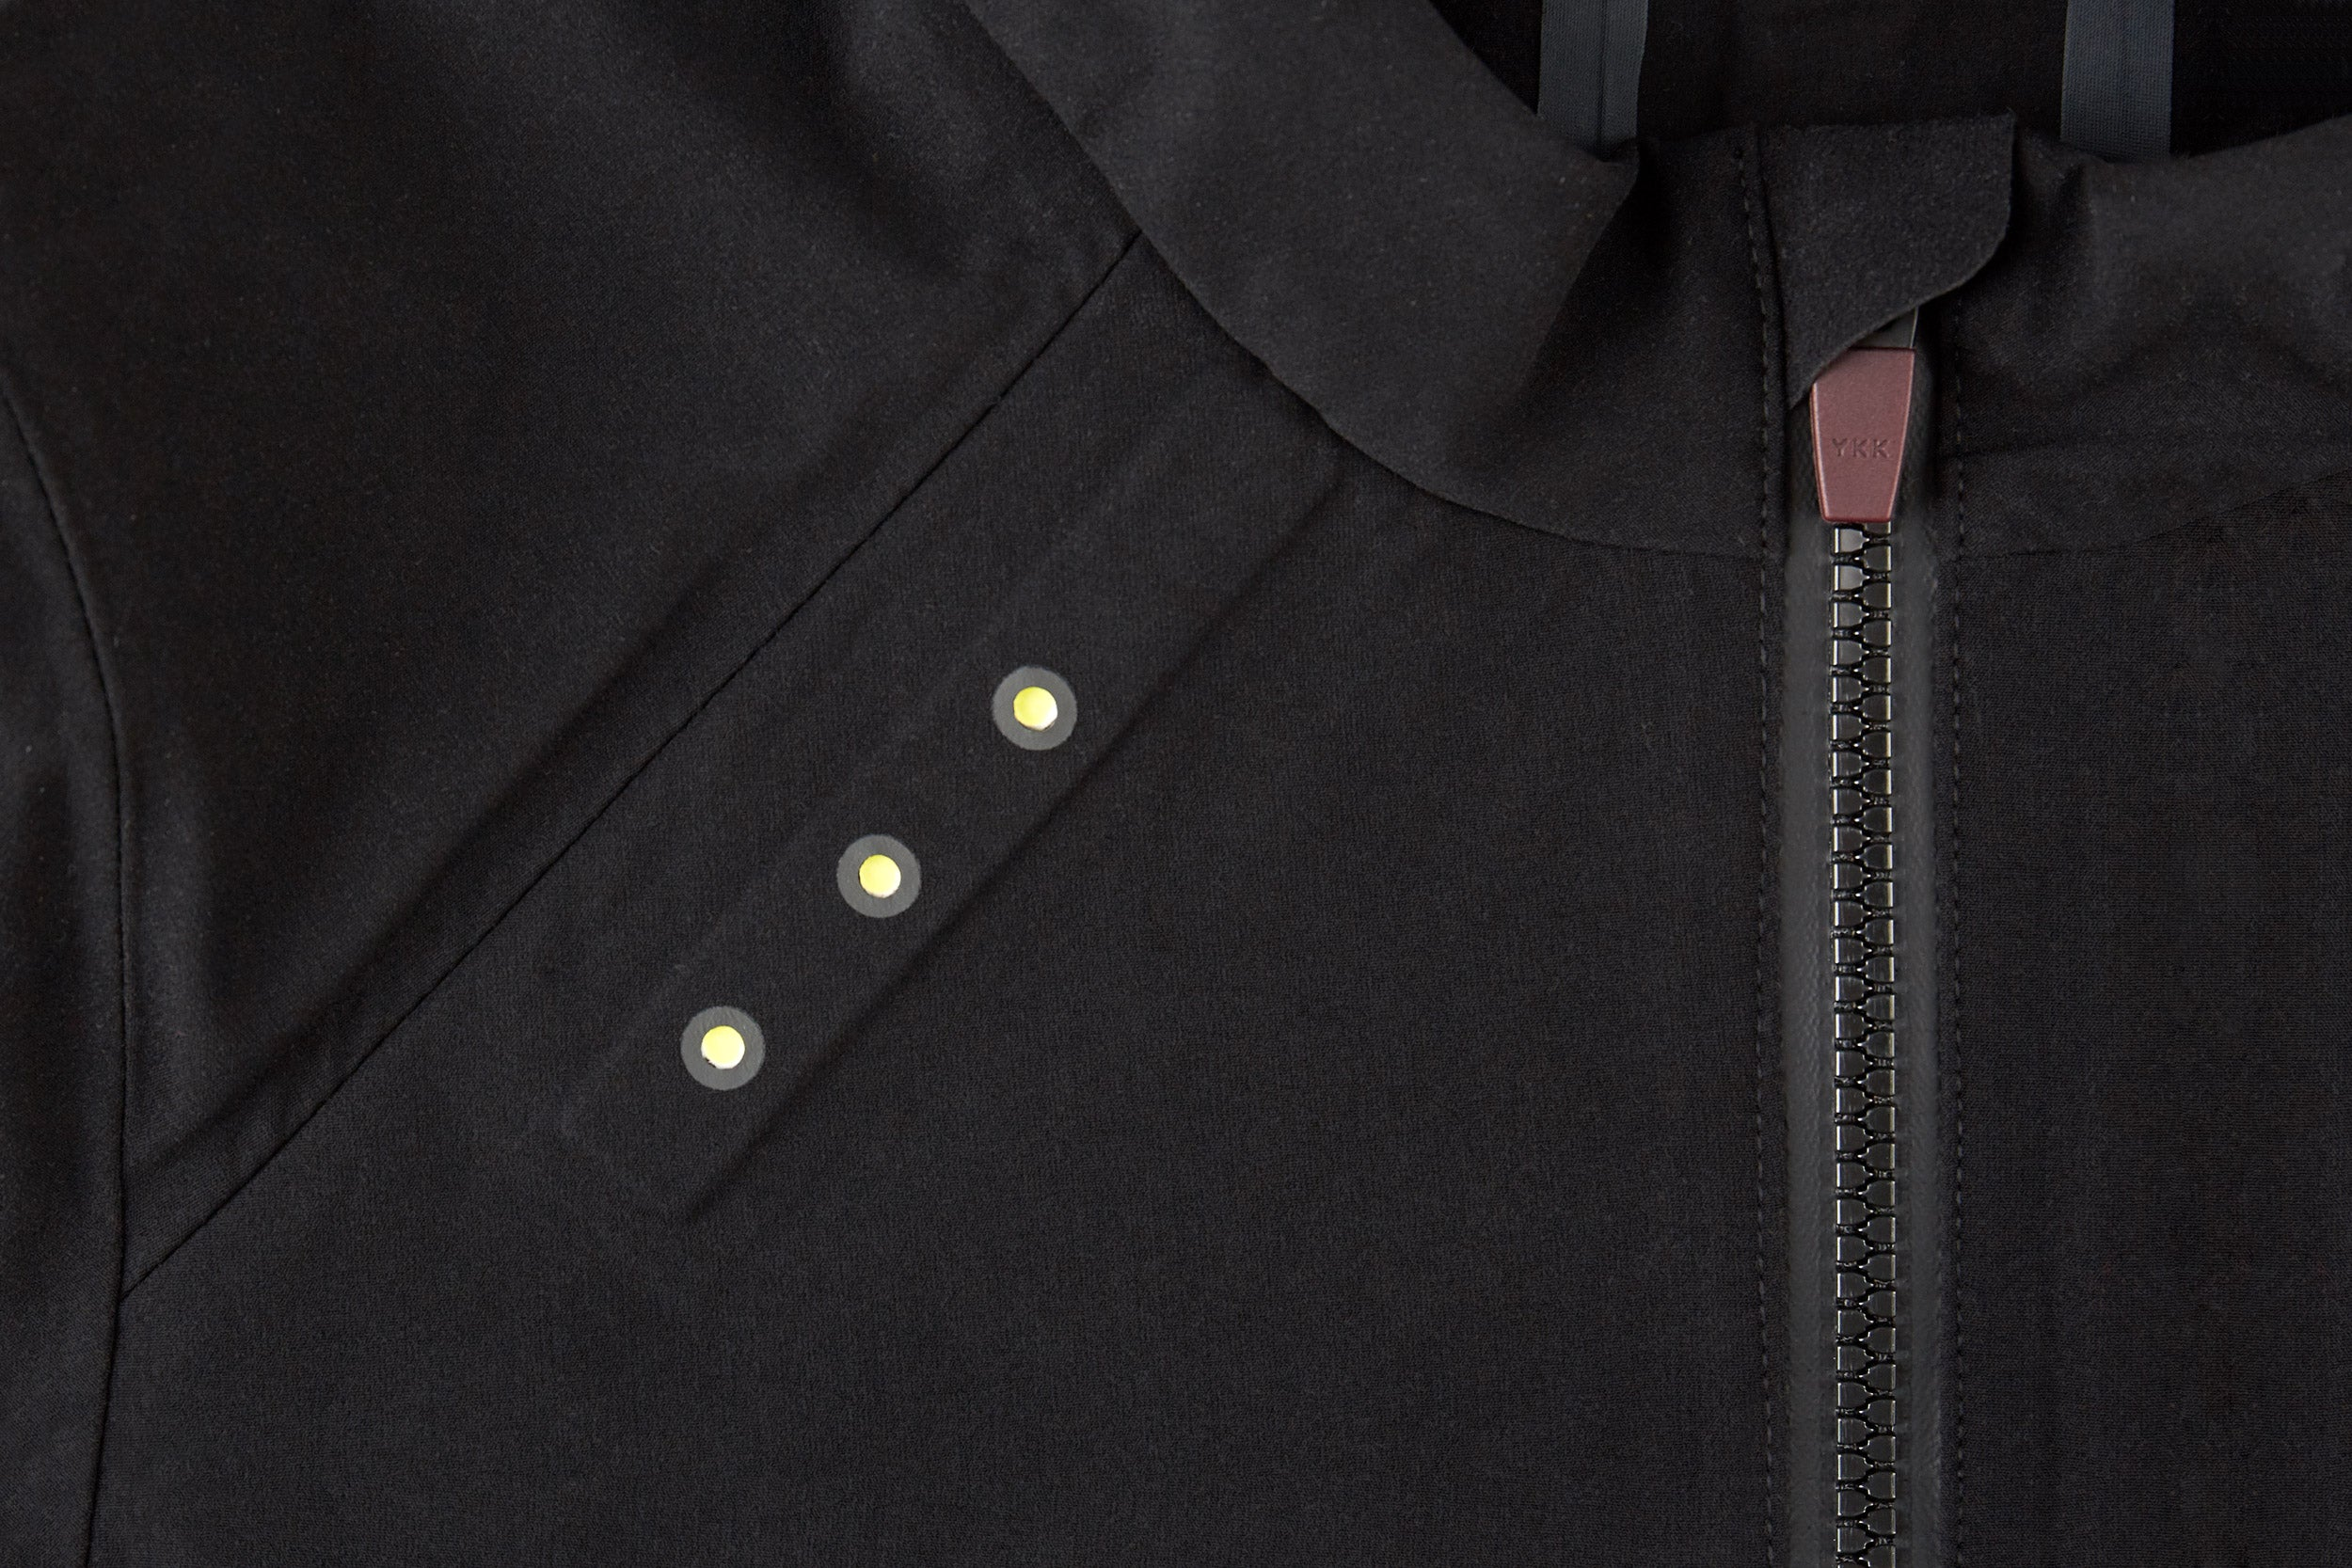 Bonding and precision laser cutting techniques give the garments a sleek, modern aesthetic while reducing overall weight. AquaGuard® Vislon® zippers are used to make the jacket easy to open and close, even with gloved hands, as well as on a zipped rear pocket for keeping essentials dry. Our graphic 'Shift' pattern printed in reflective ink not only looks good but also helps keep you visible in low light conditions.